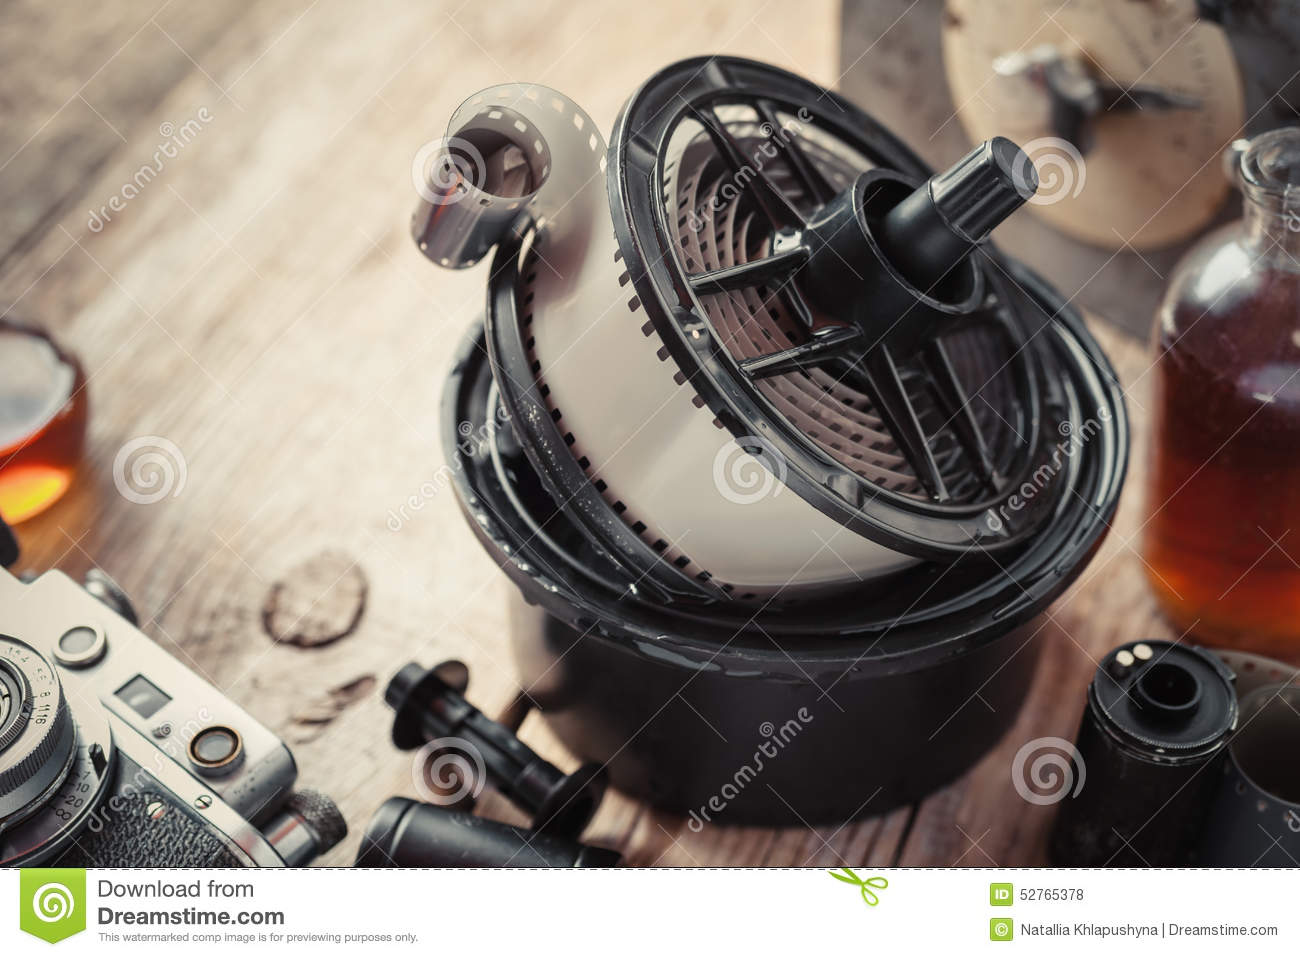 Developing tank with its film reels, photo film and camera